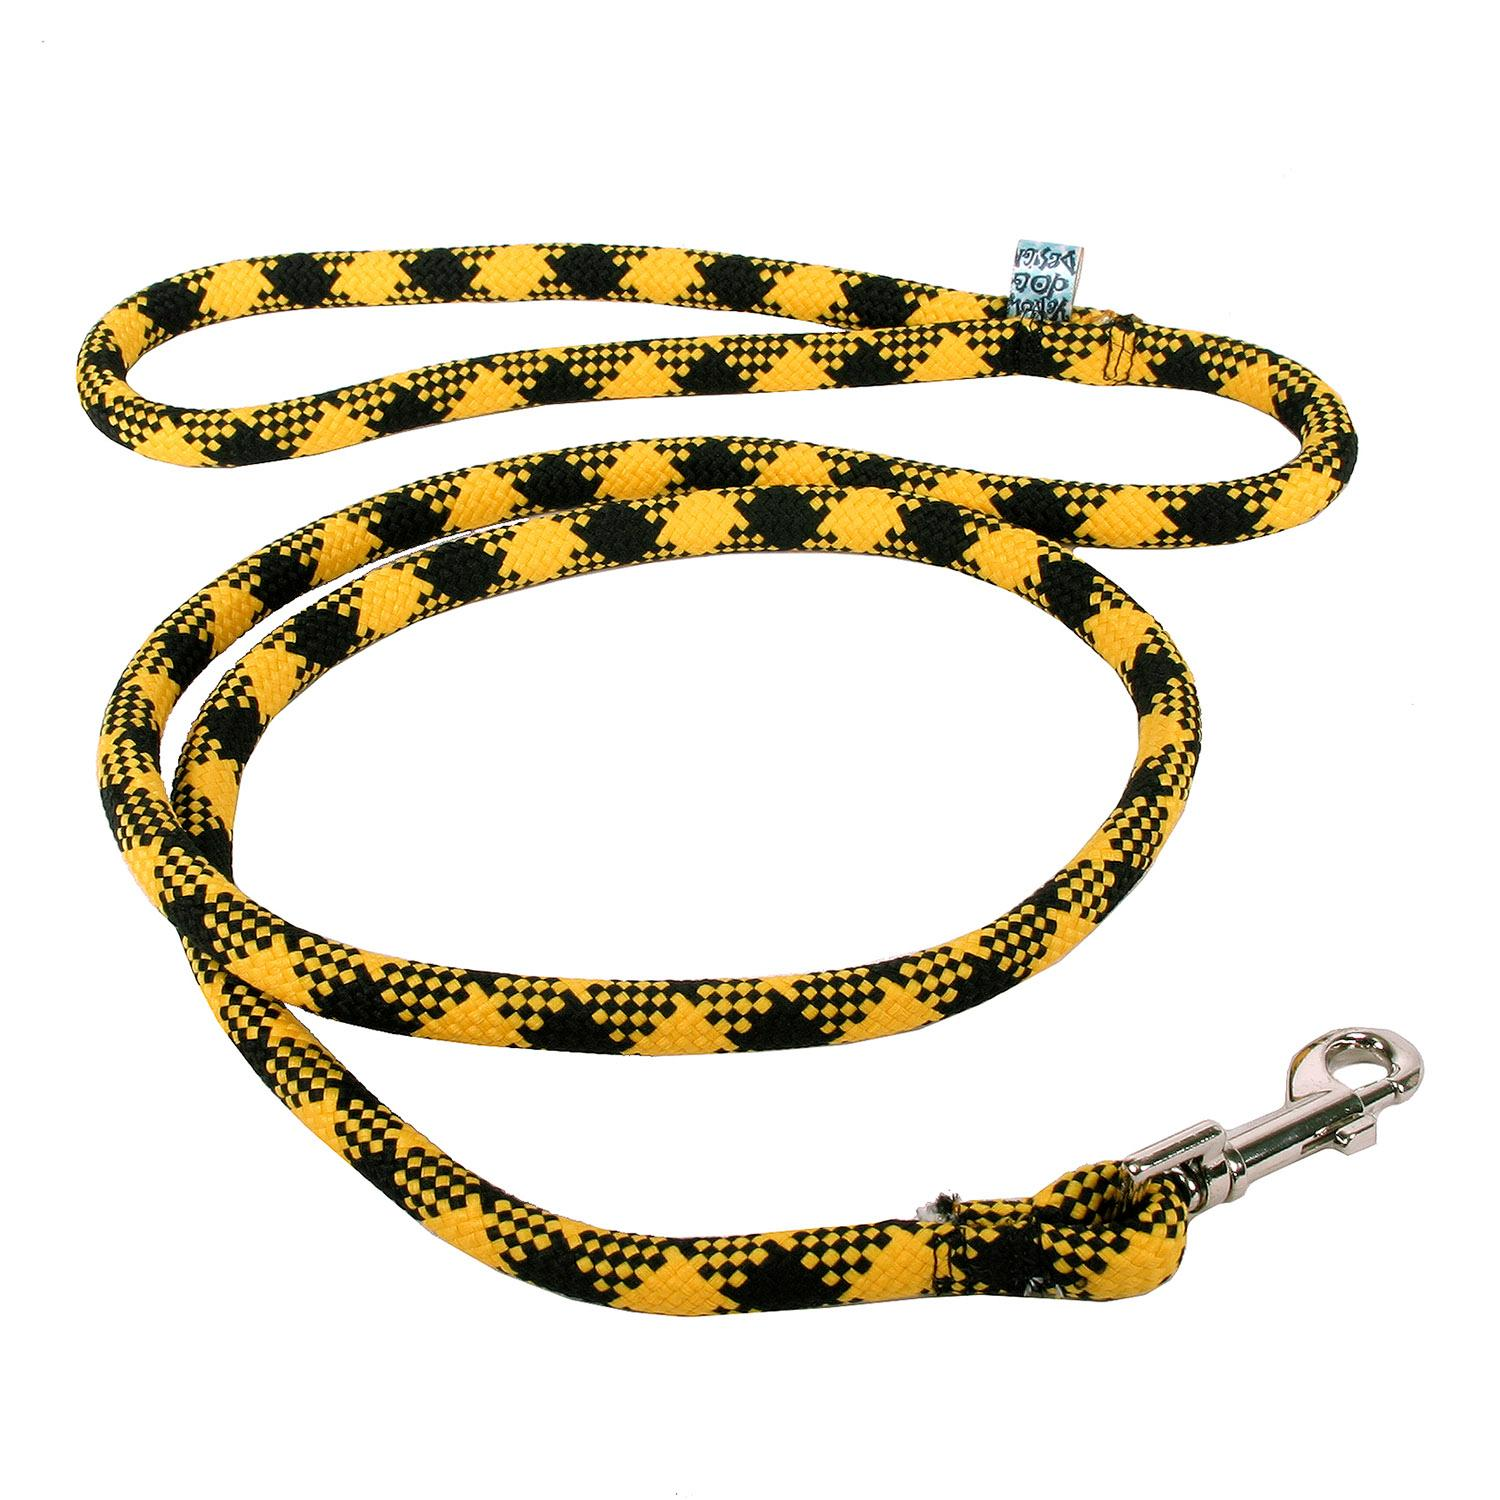 Round Braided Team Colors Dog Leash by Yellow Dog - Black and Gold